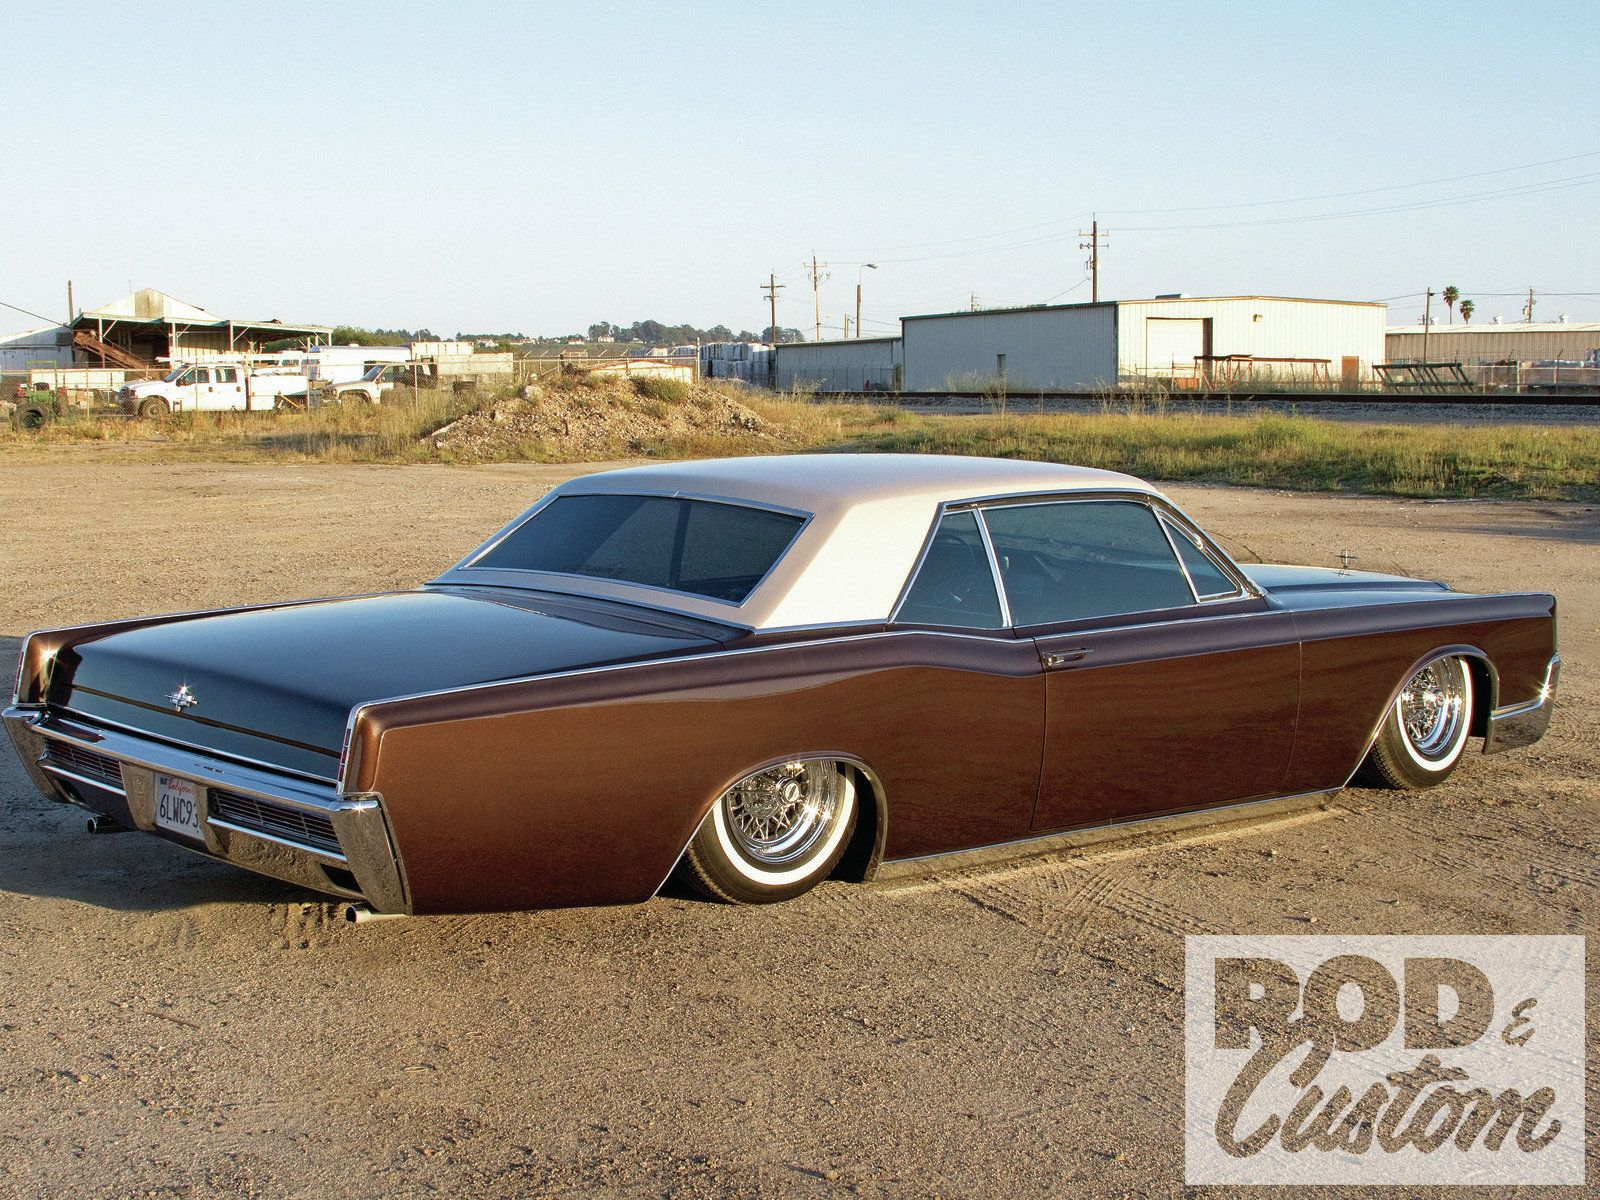 a9082c12aa8e809194ebbe2f64f37413 Fascinating Lincoln Continental Used In Hit and Run Cars Trend